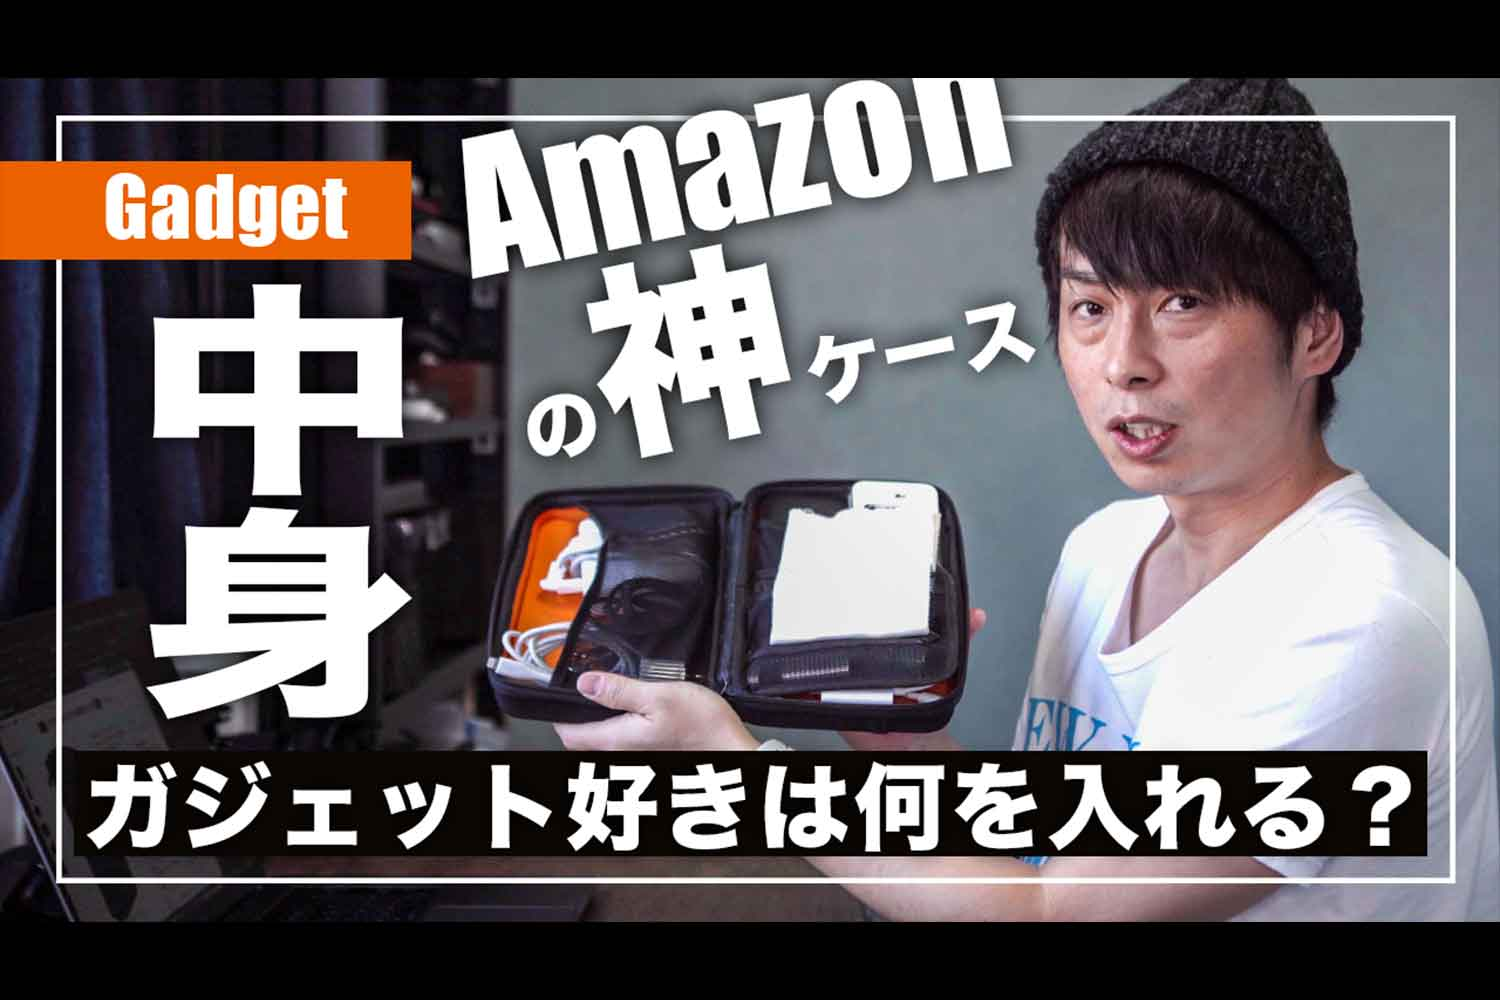 amazon-Gadget-youtube